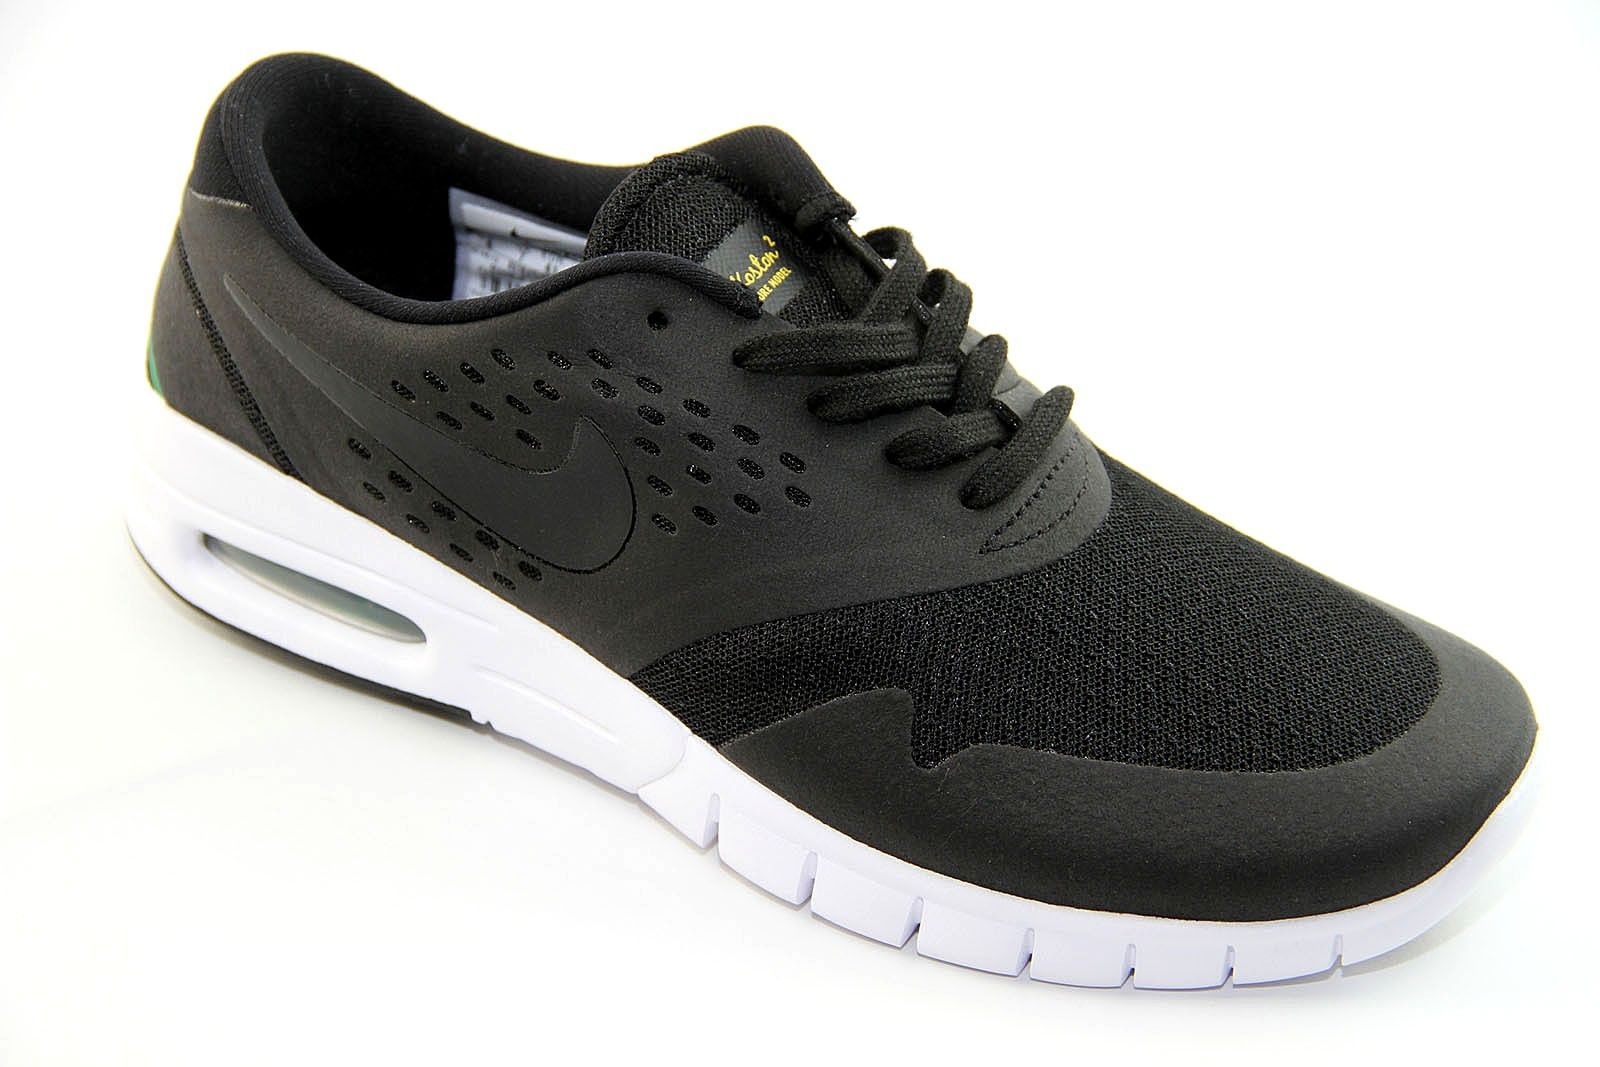 low priced 32335 a5ca3 Eric Koston 2 Max